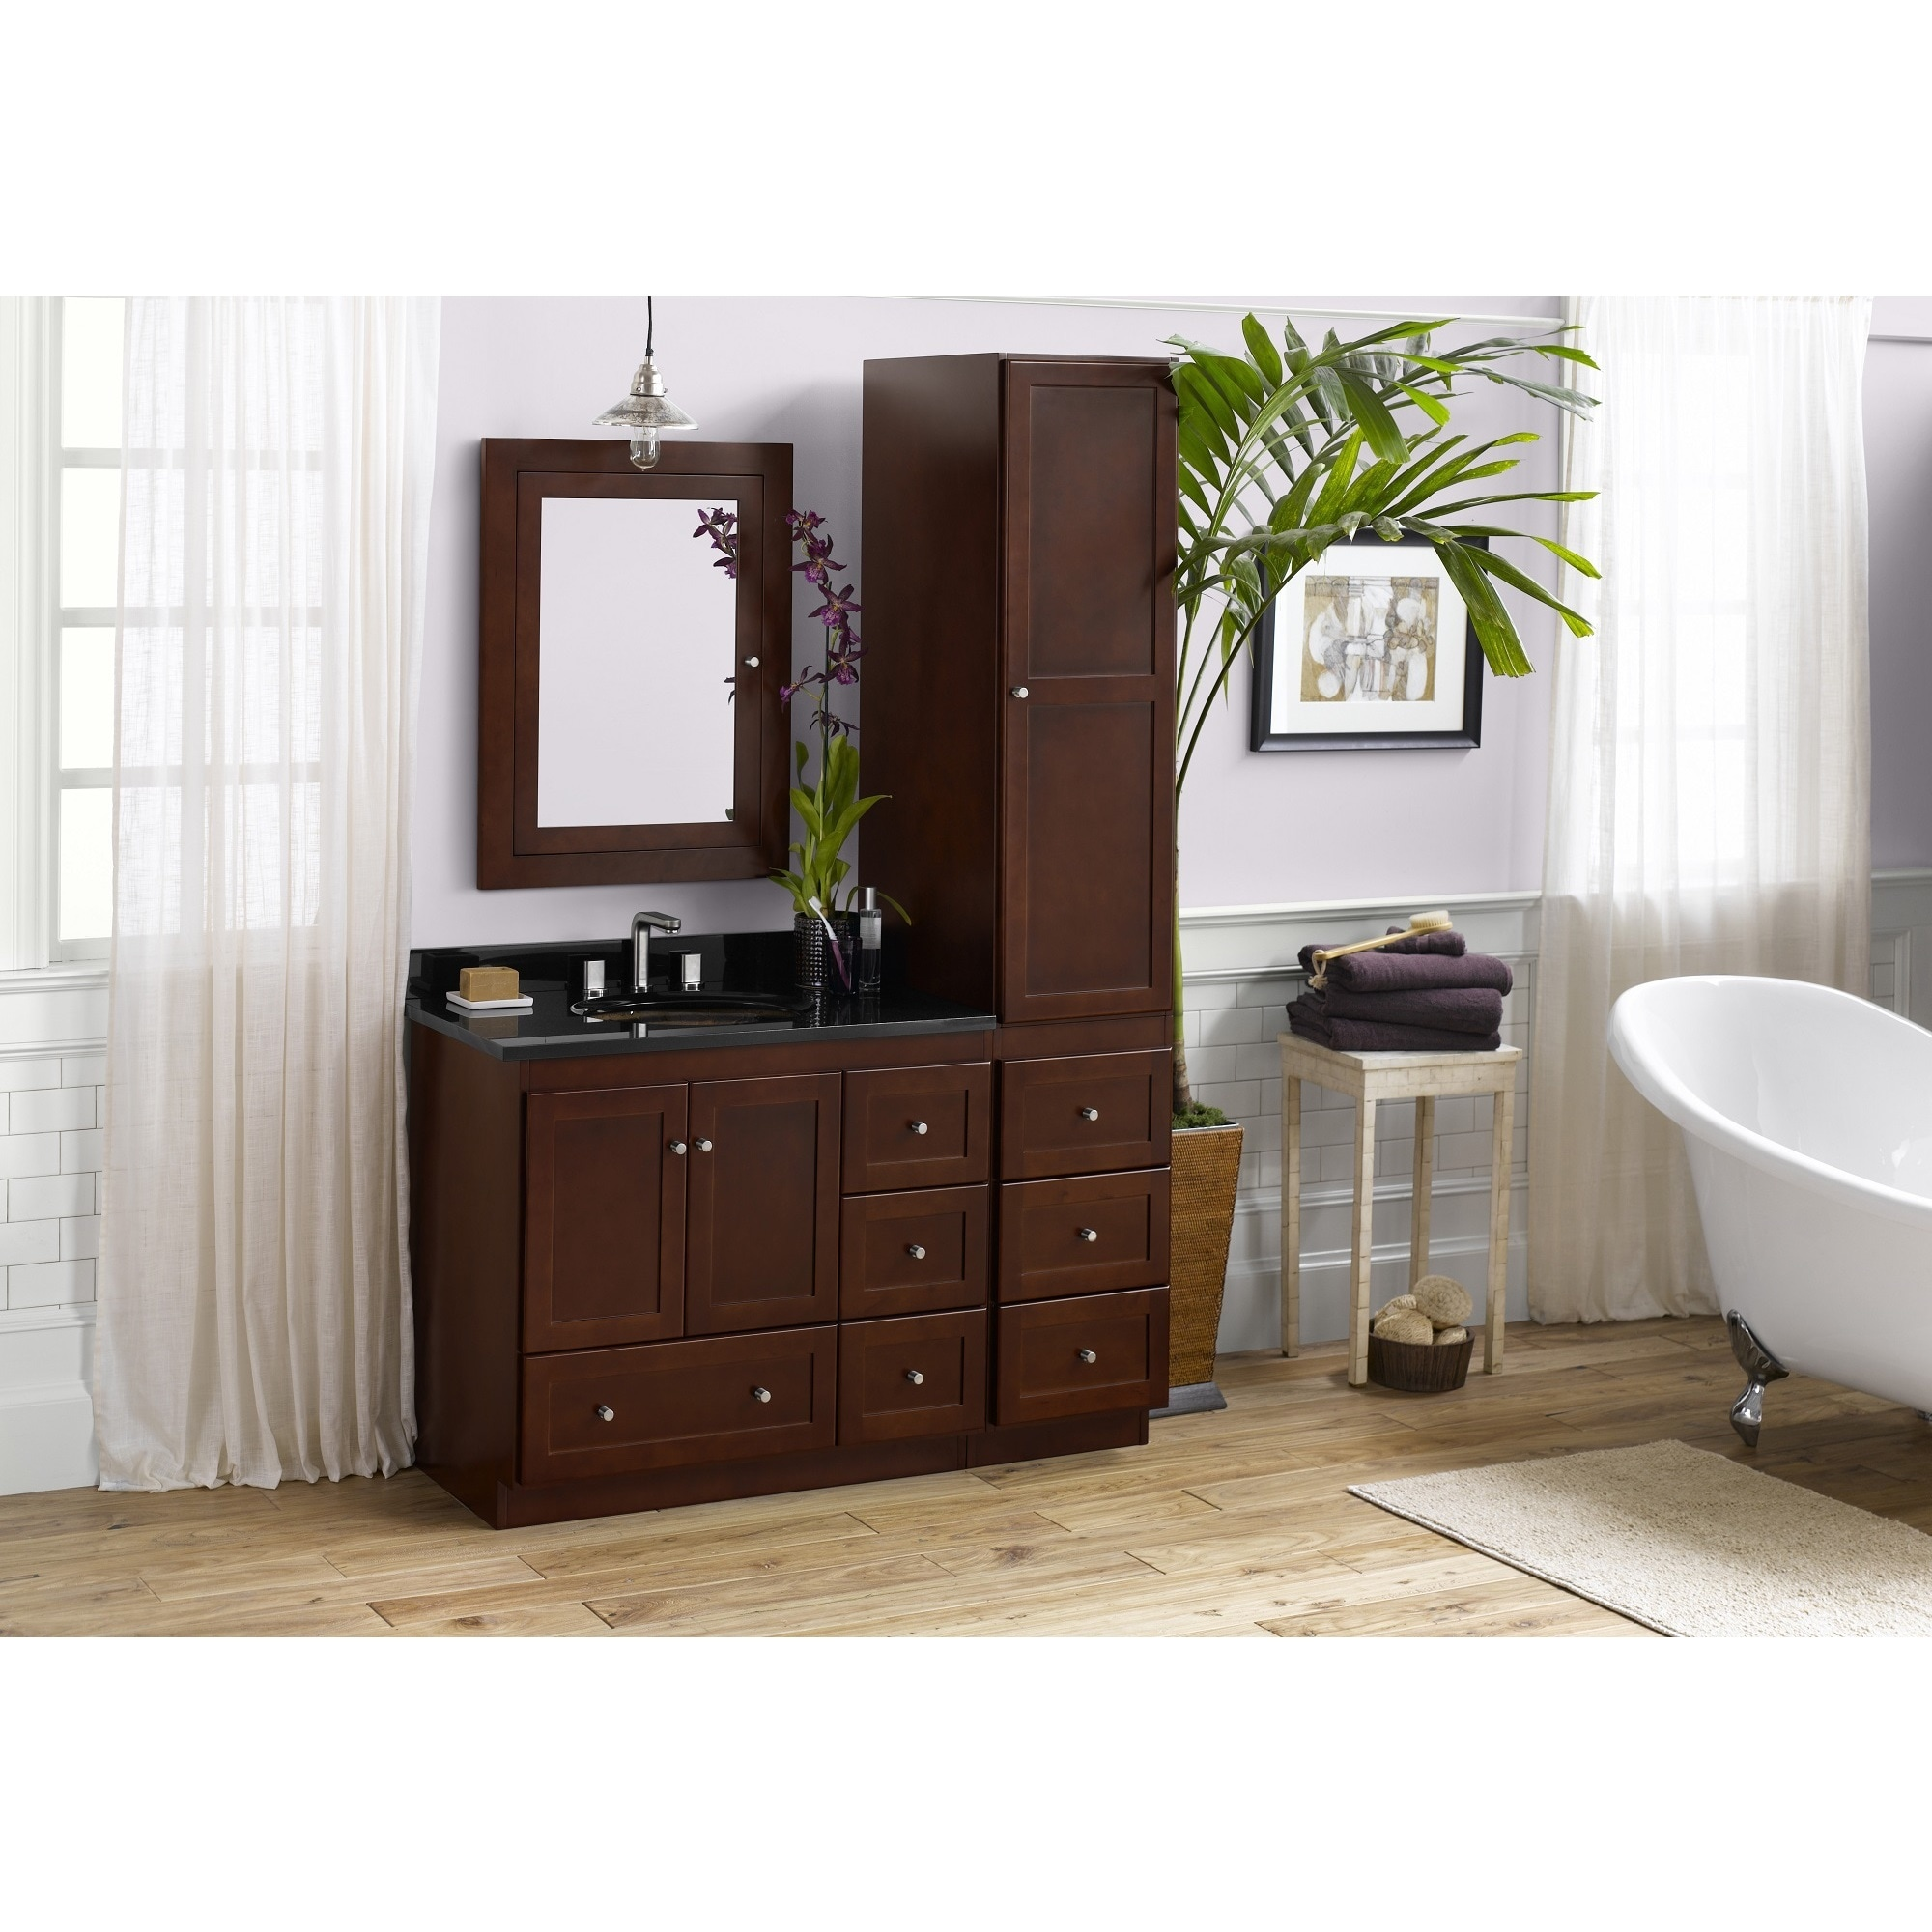 Bathroom Vanity Set In Dark Cherry